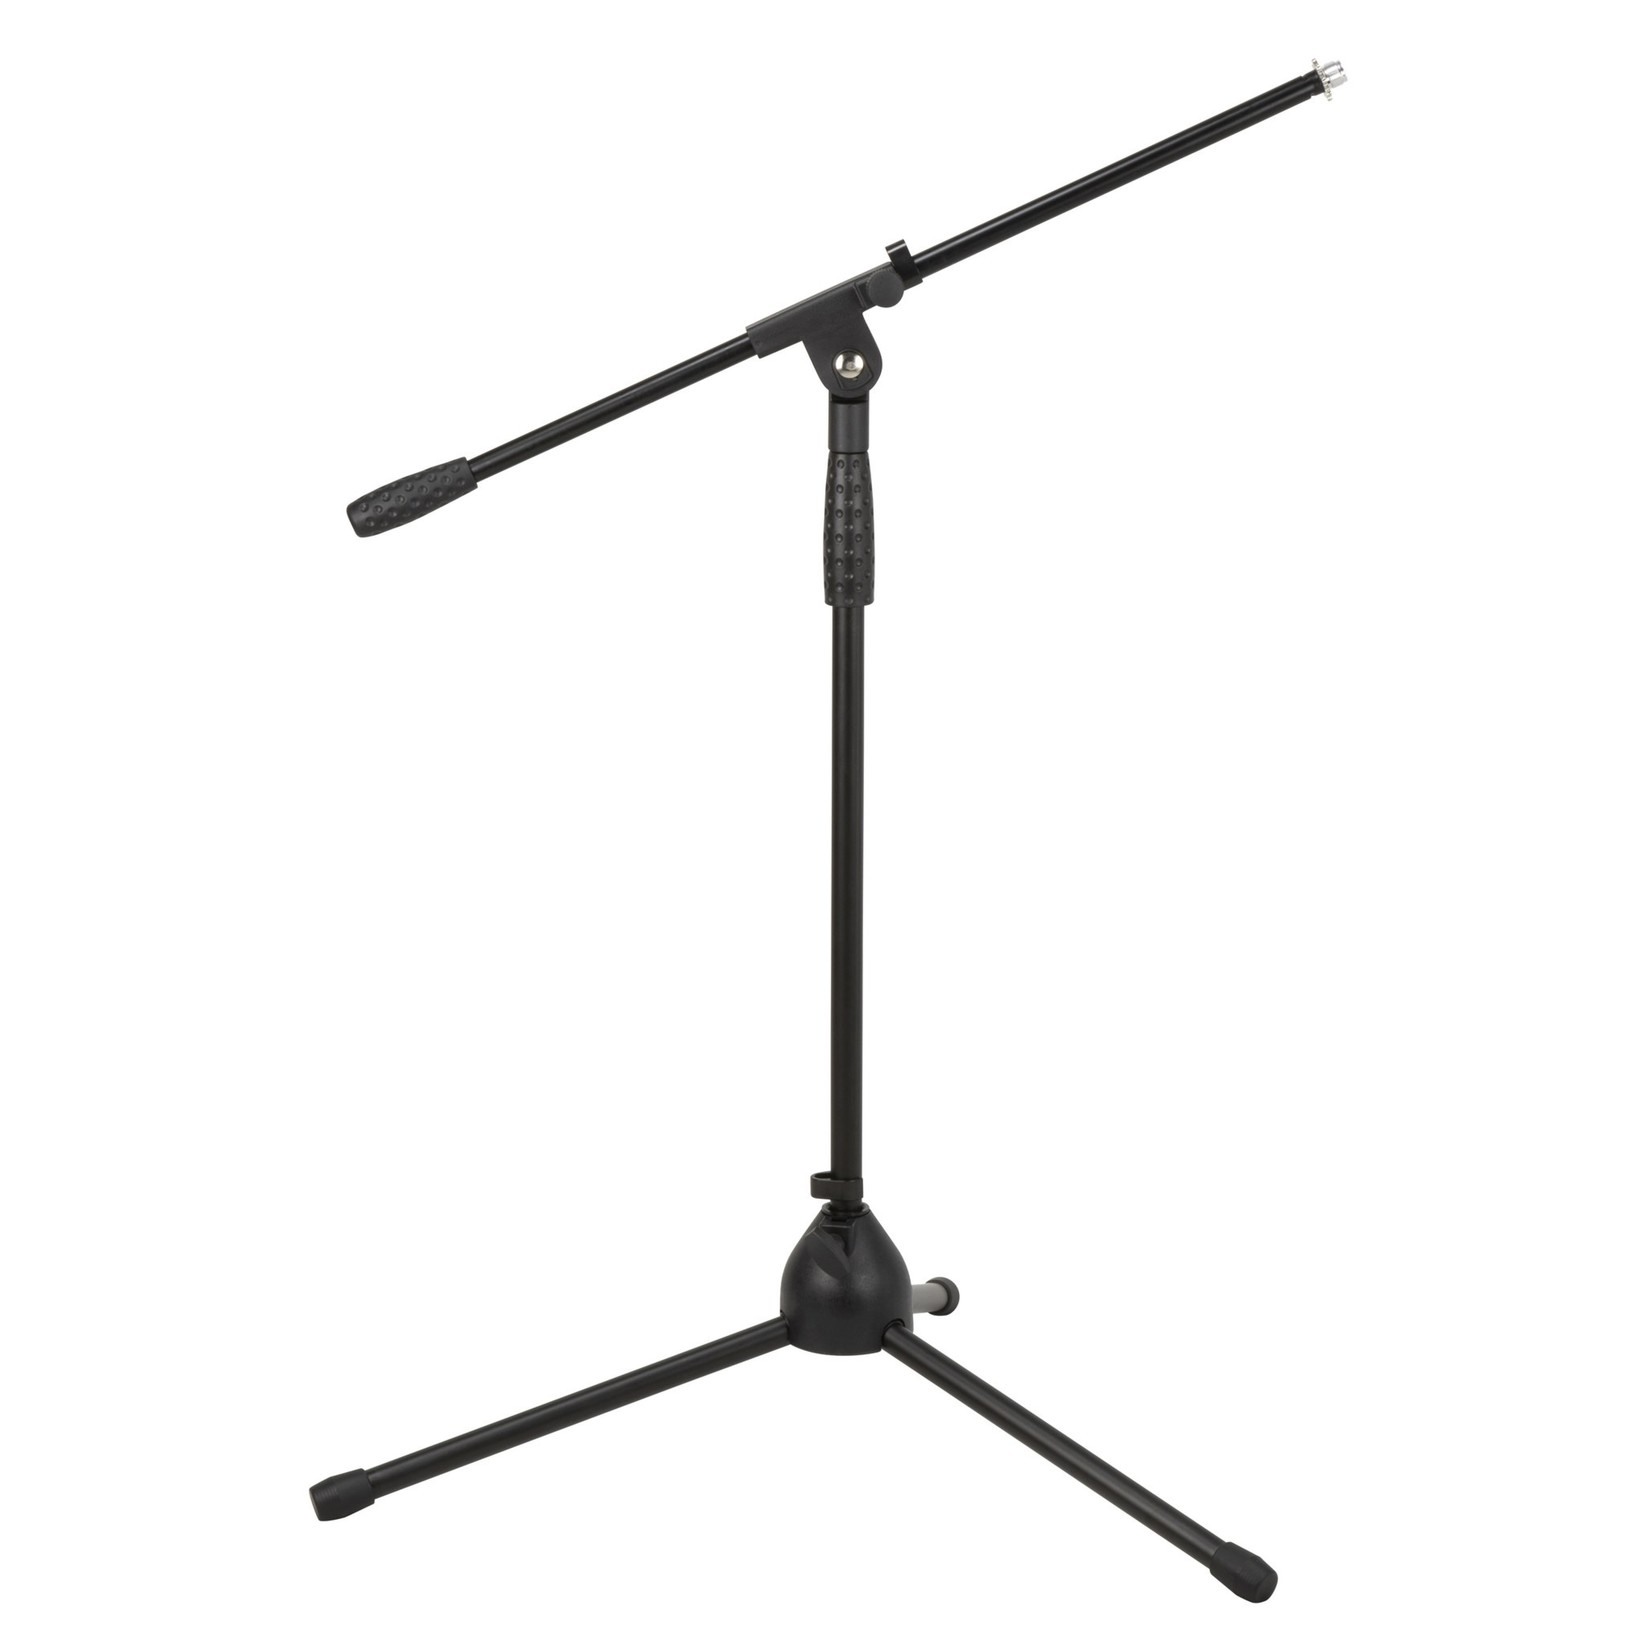 Strukture Strukture Low Profile Microphone Boom Stand (adjusts from 29.5 inches to 43.5 inches)